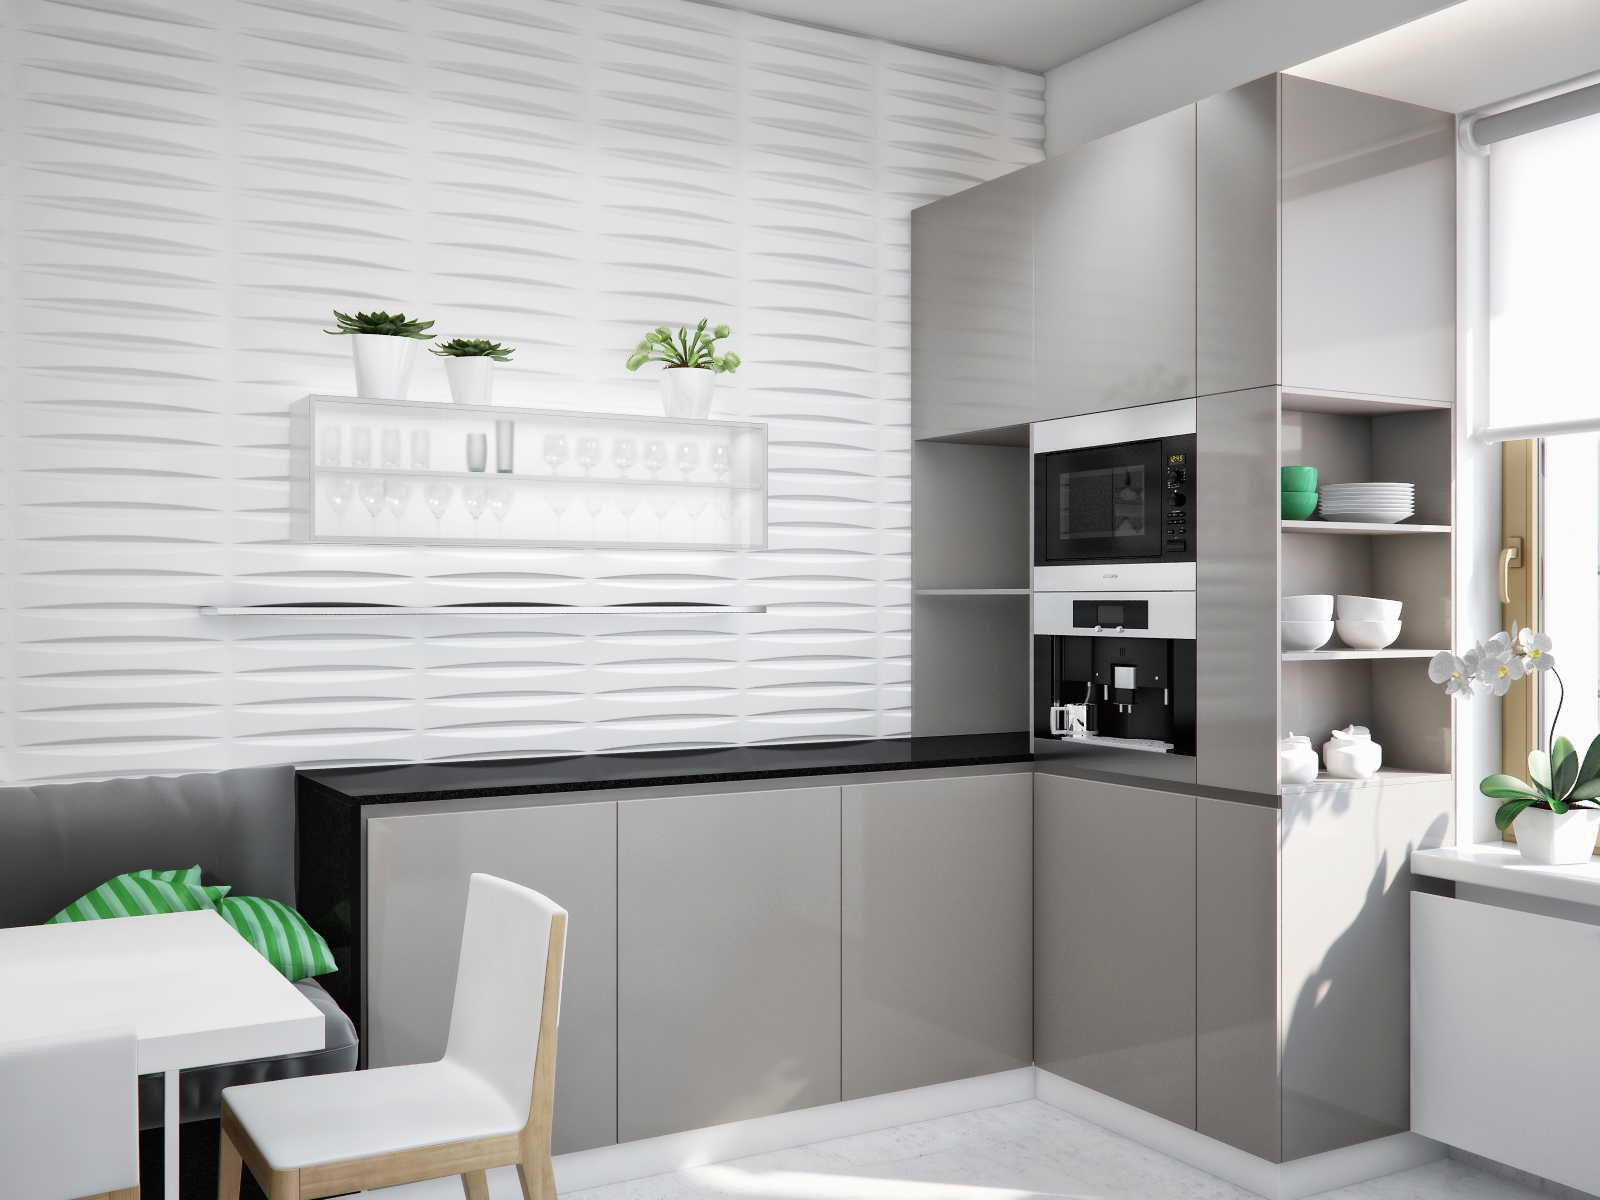 White kitchen gray units black worktop interior design for Gray and white kitchen decor